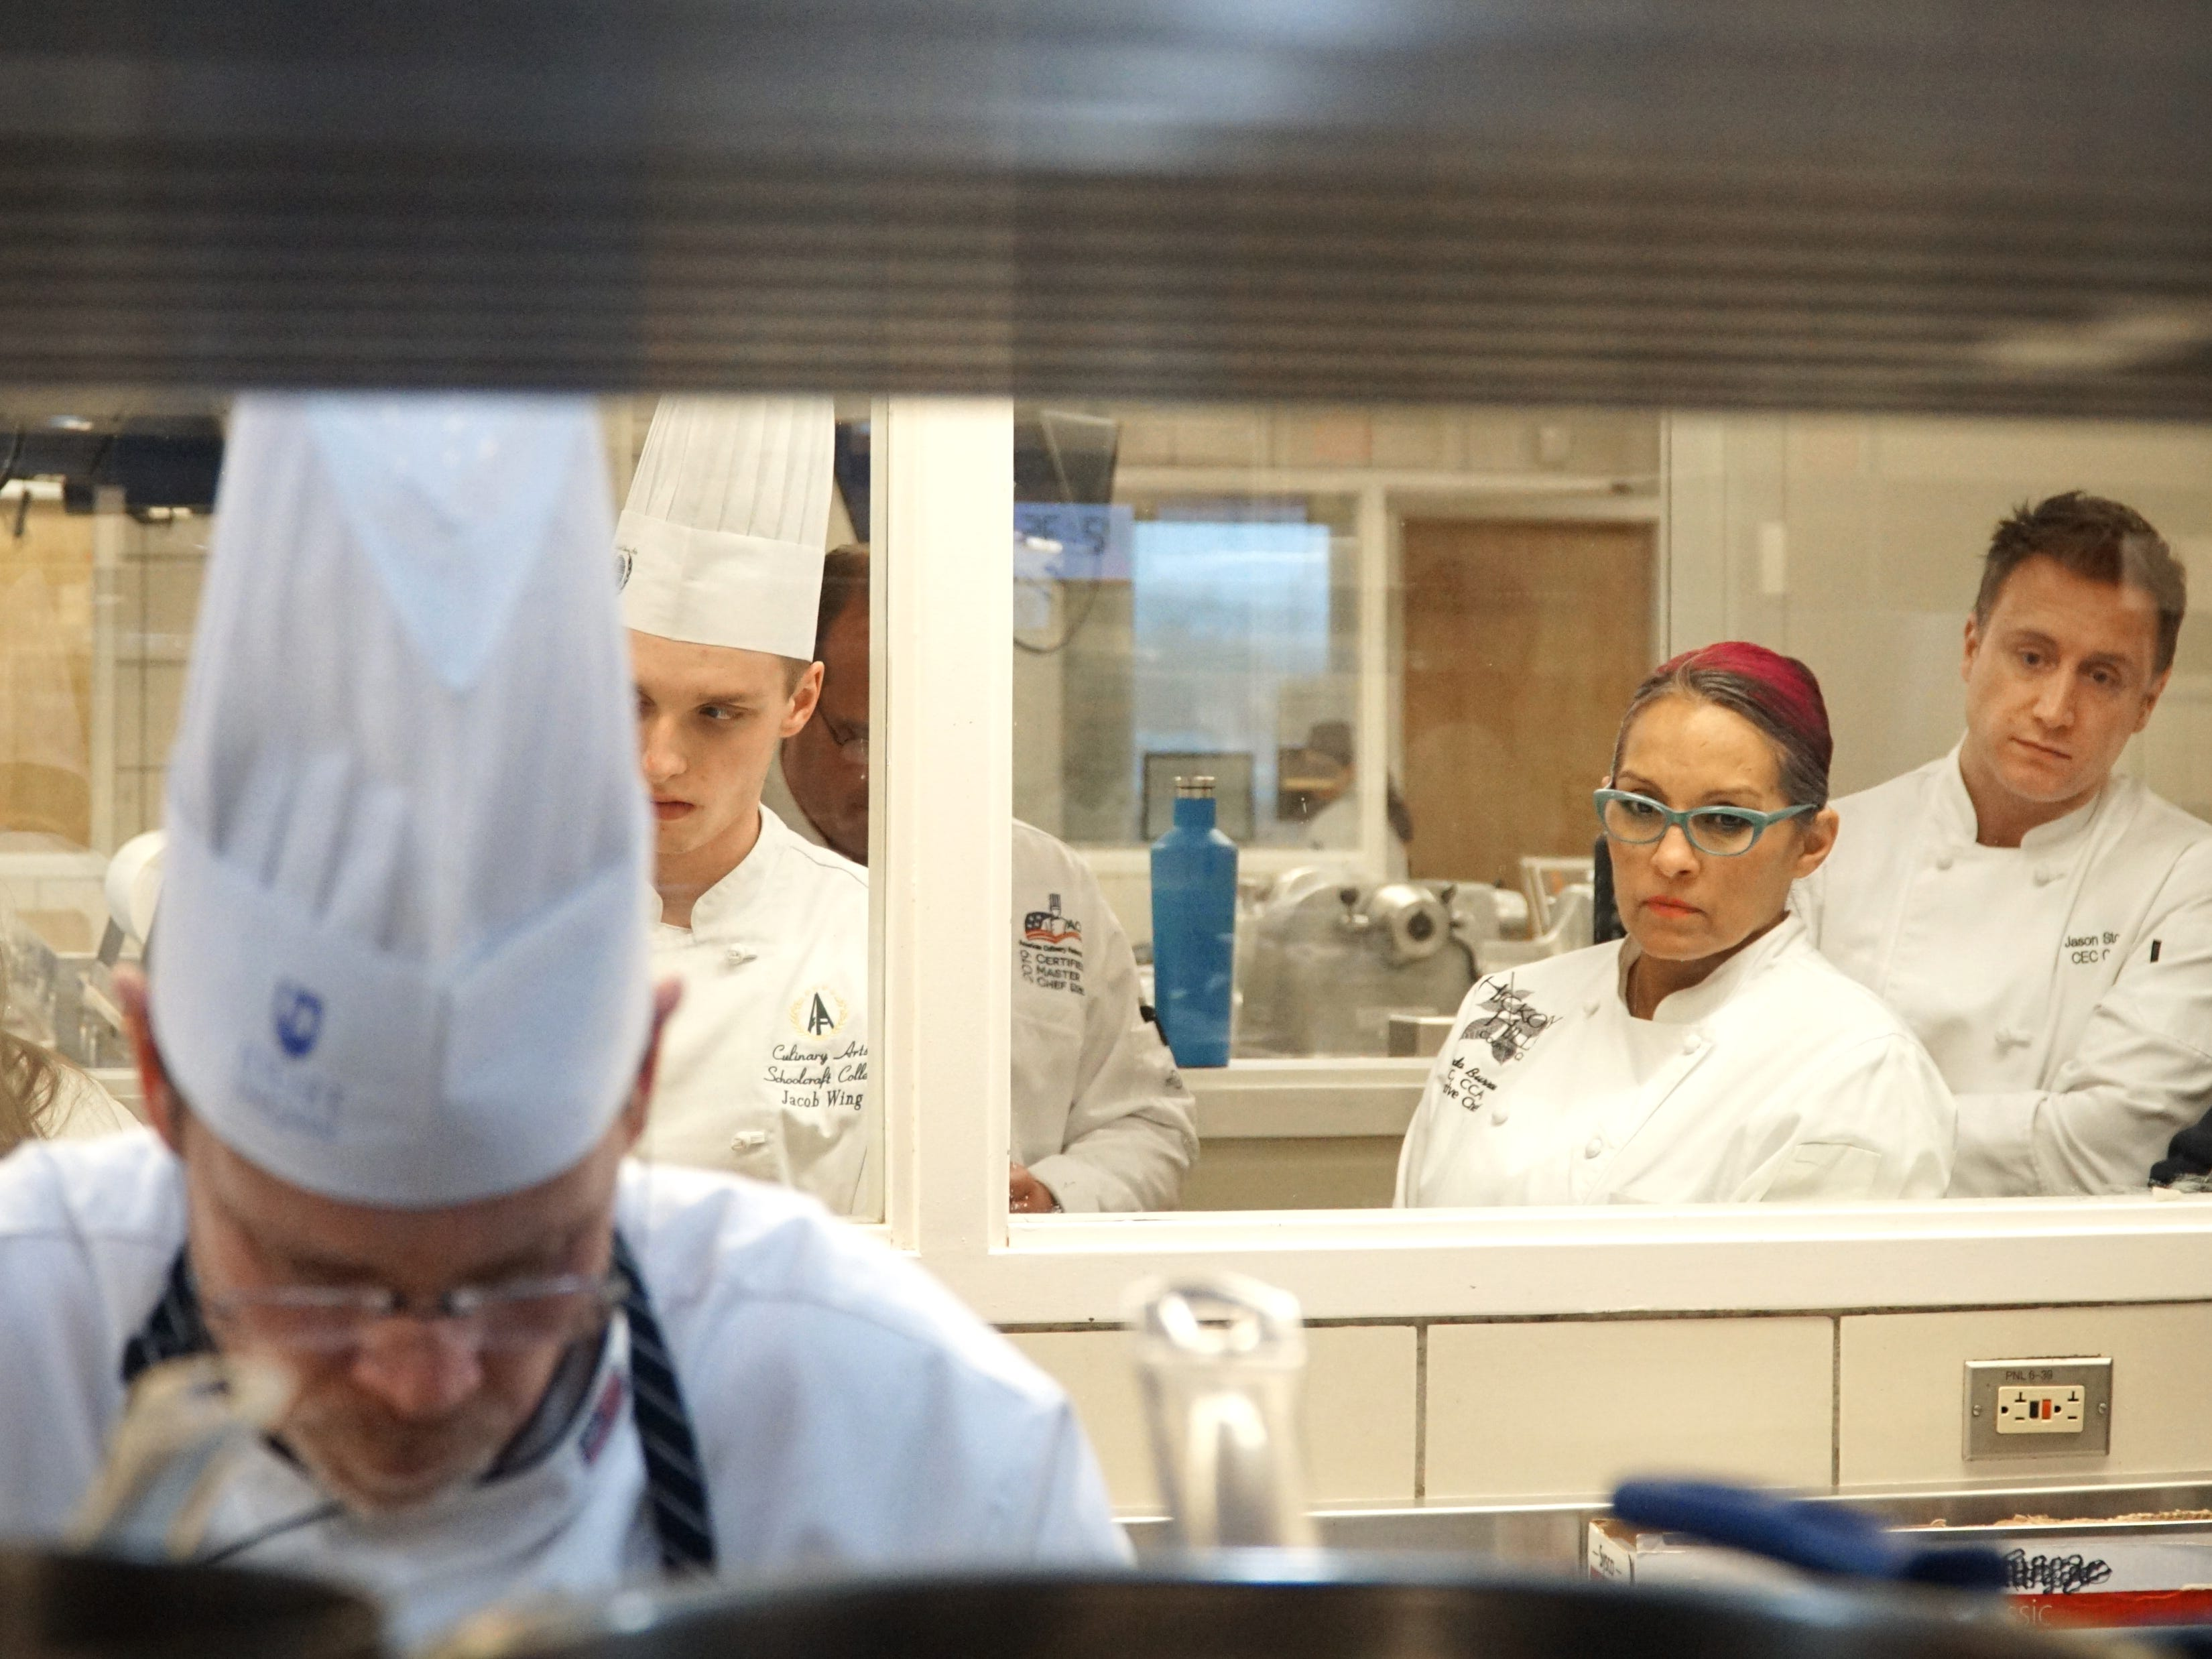 Certified Master Chef exam student Timothy Bucci, center-left, is watched by a window-ful of other chefs from Schoolcraft College and around the country as he makes his meal.  Melinda Burrows, second from right, came from Springfield, Missouri to judge the student.